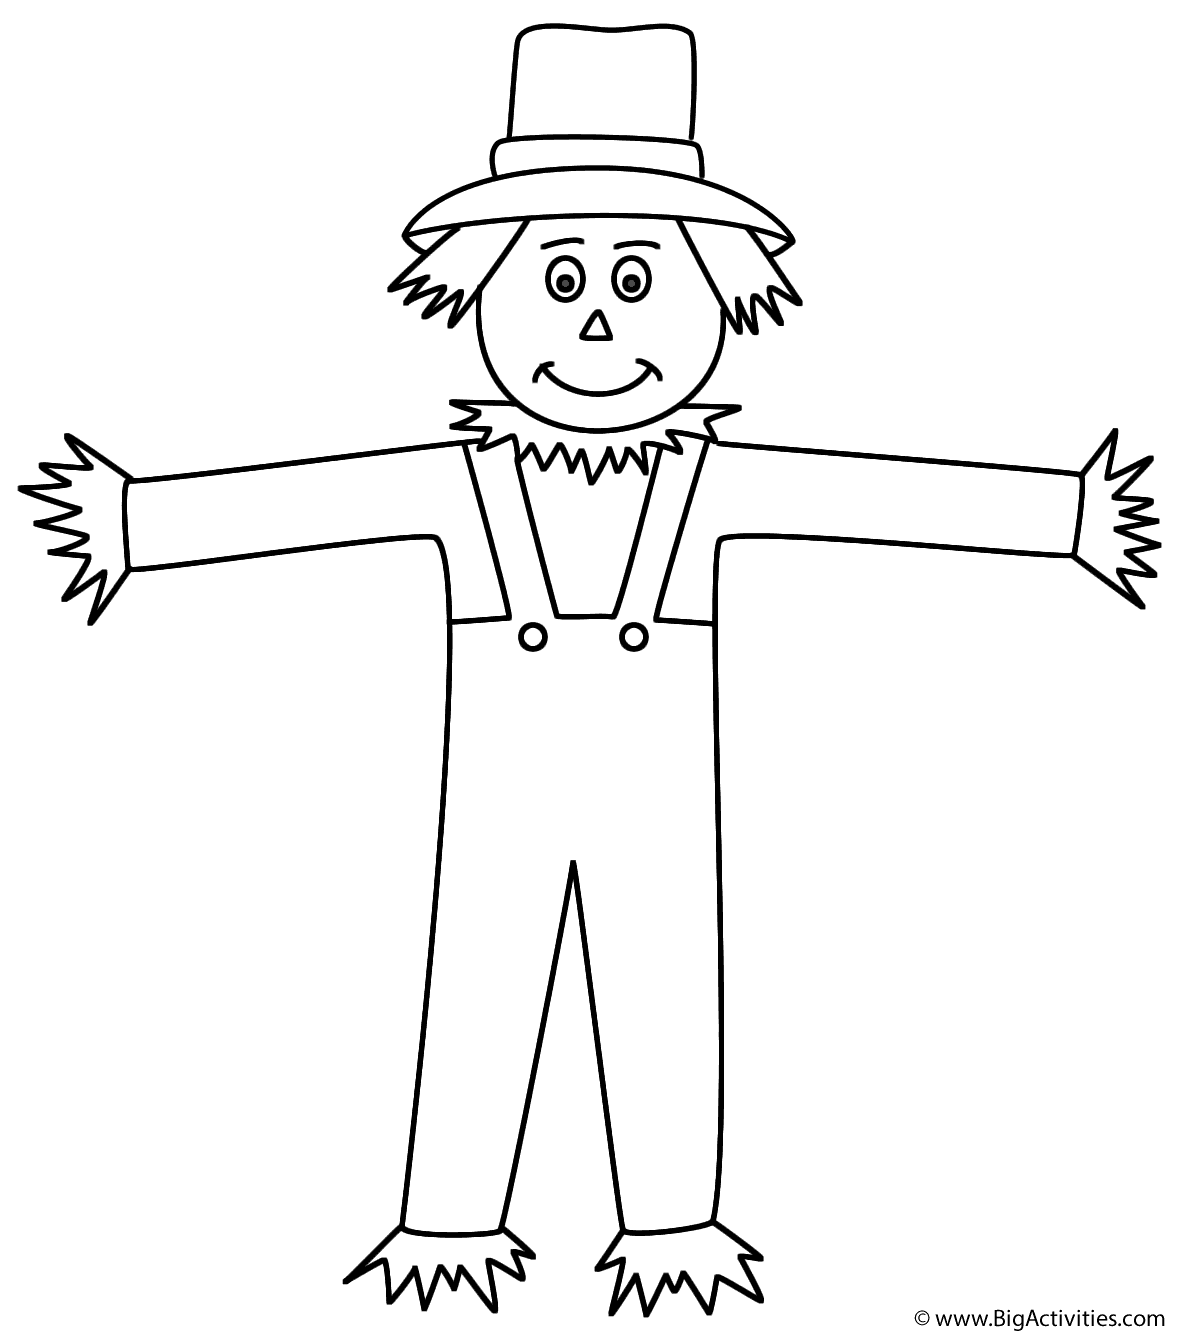 Scarecrow Coloring Sheets | Scarecrow coloring pages free ...